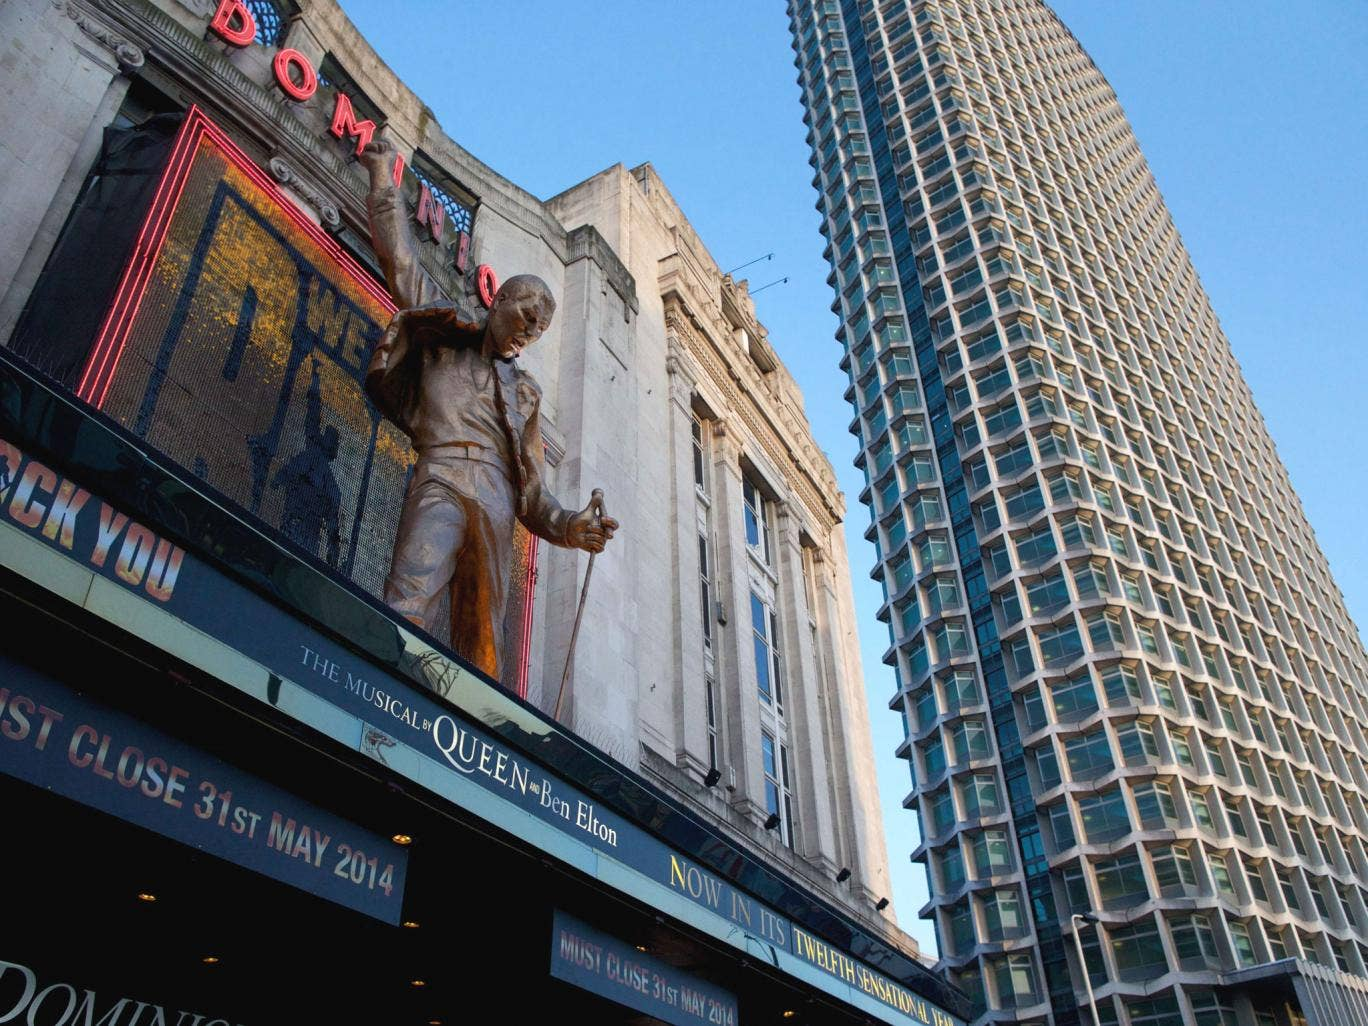 Freddie Mercury of rock band Queen on the front of the Dominion theatre where the show 'We will rock you' plays in London